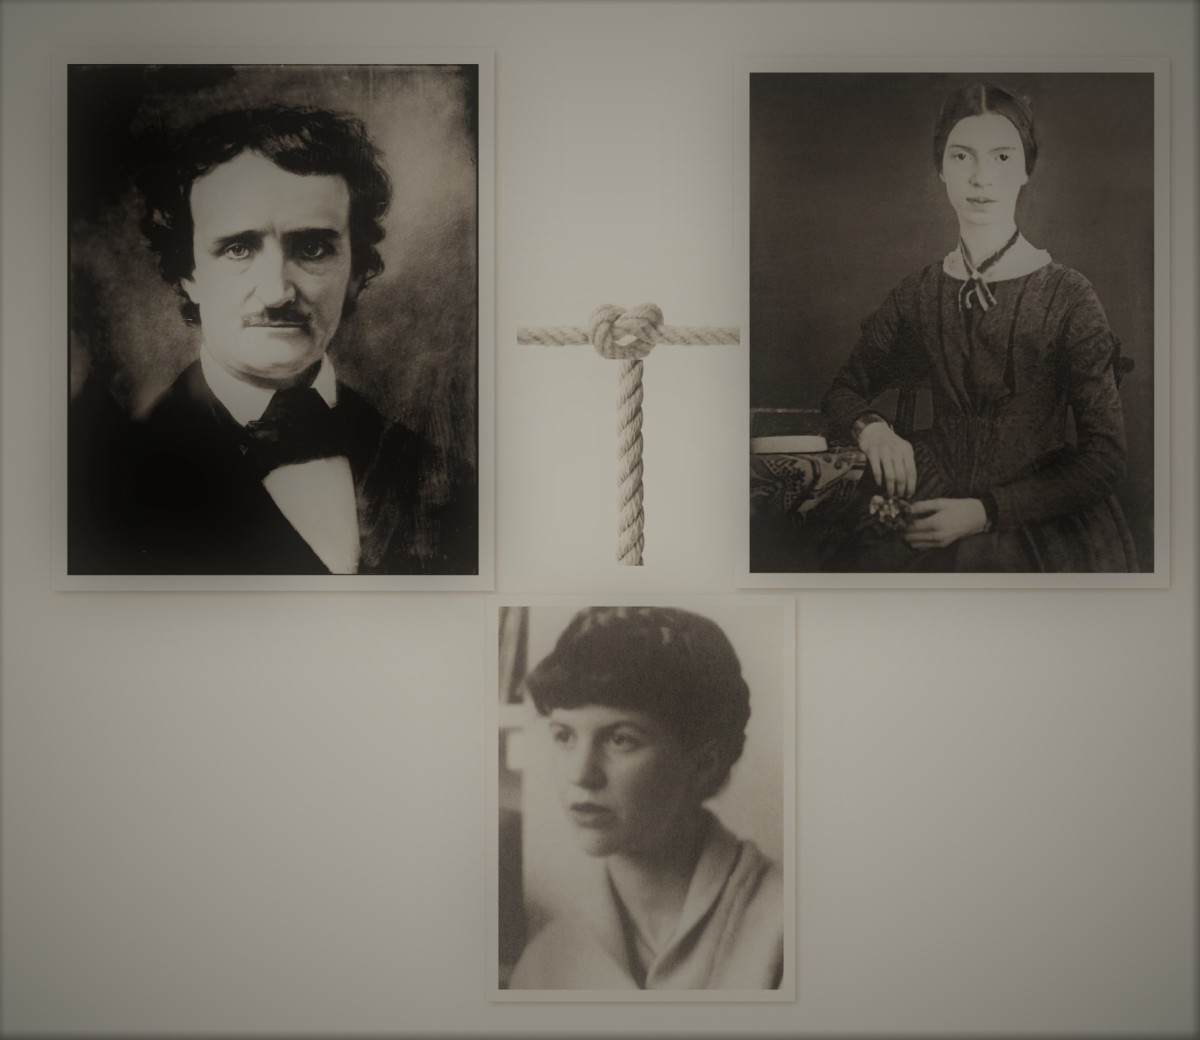 Edgar Allan Poe, Emily Dickinson, and Sylvia Plath